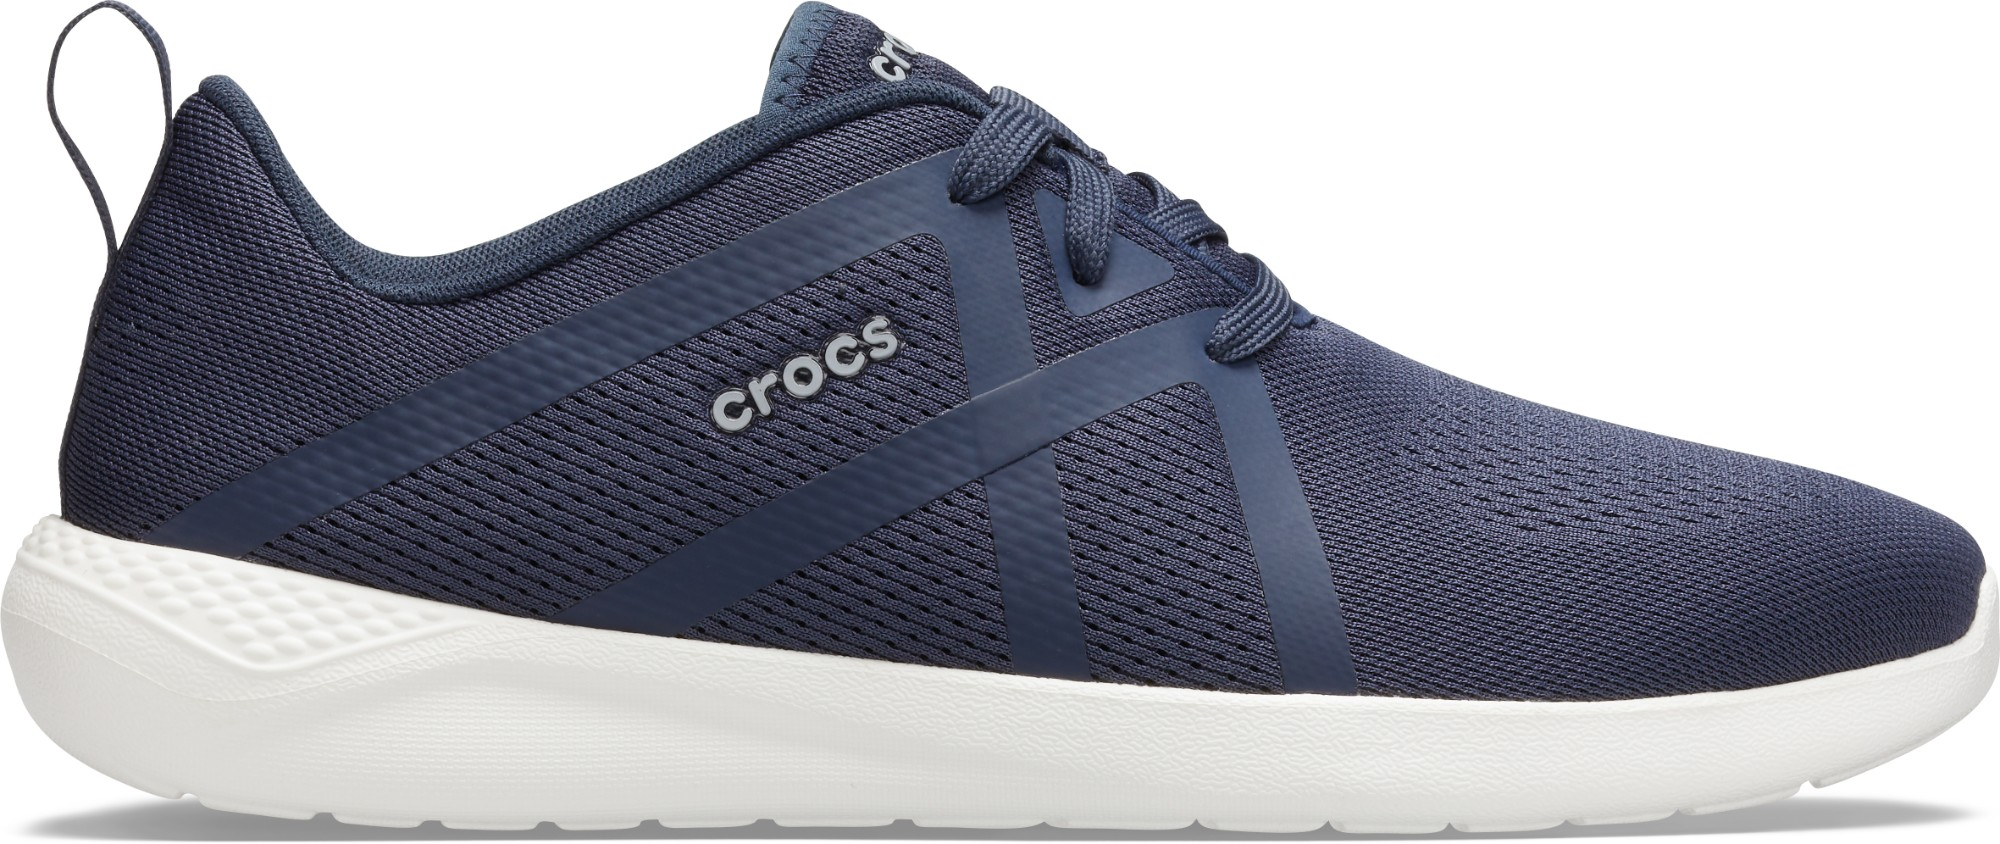 Crocs™ Literide Modform Lace Mens Navy/White 47,5